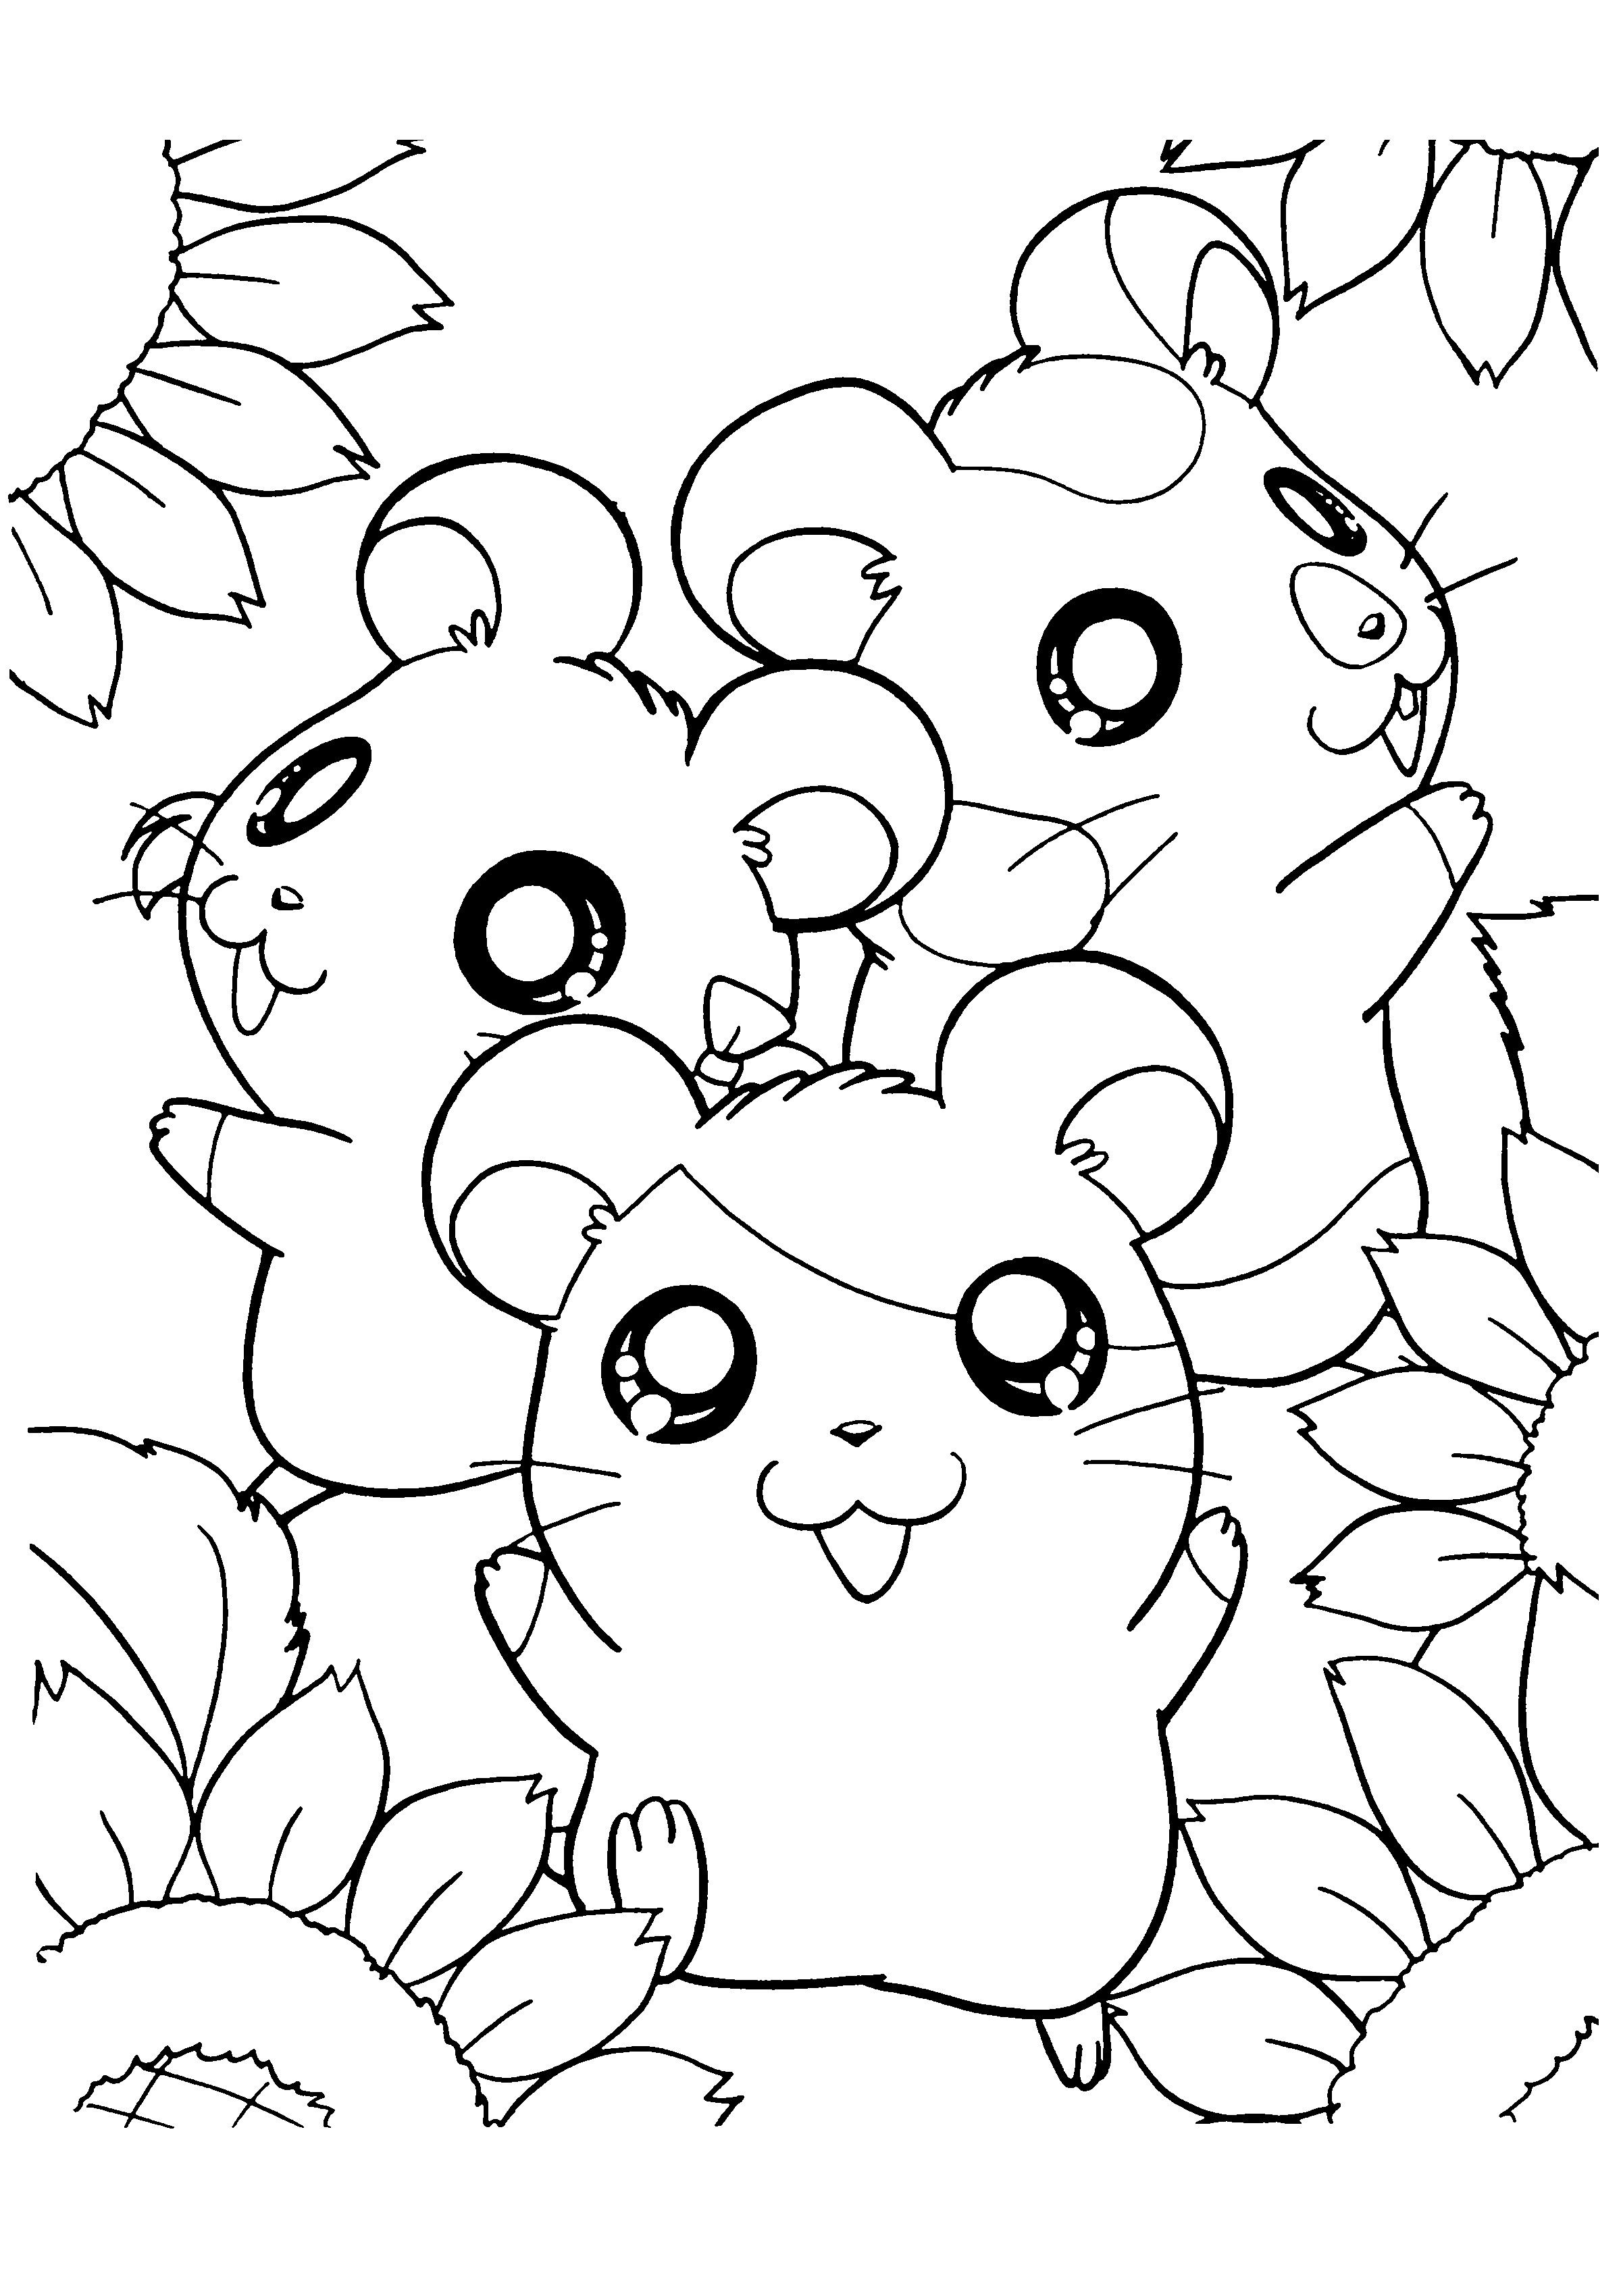 Pin de Tiger Henry en Coloring Pages | Pinterest